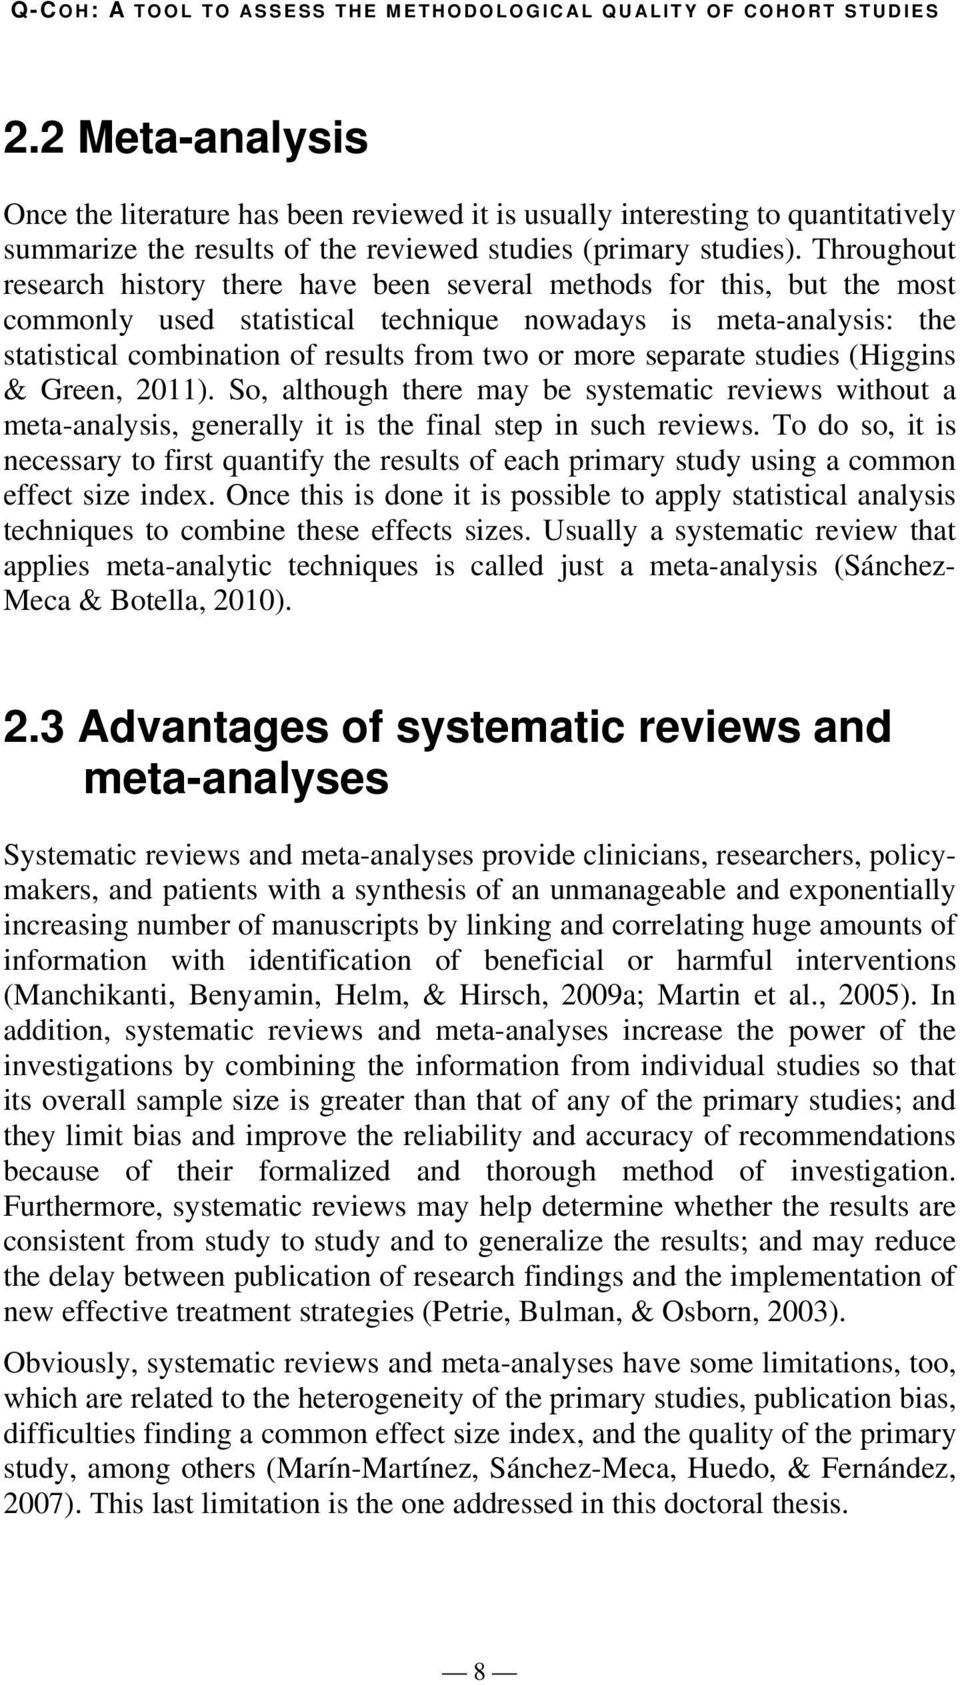 Throughout research history there have been several methods for this, but the most commonly used statistical technique nowadays is meta-analysis: the statistical combination of results from two or